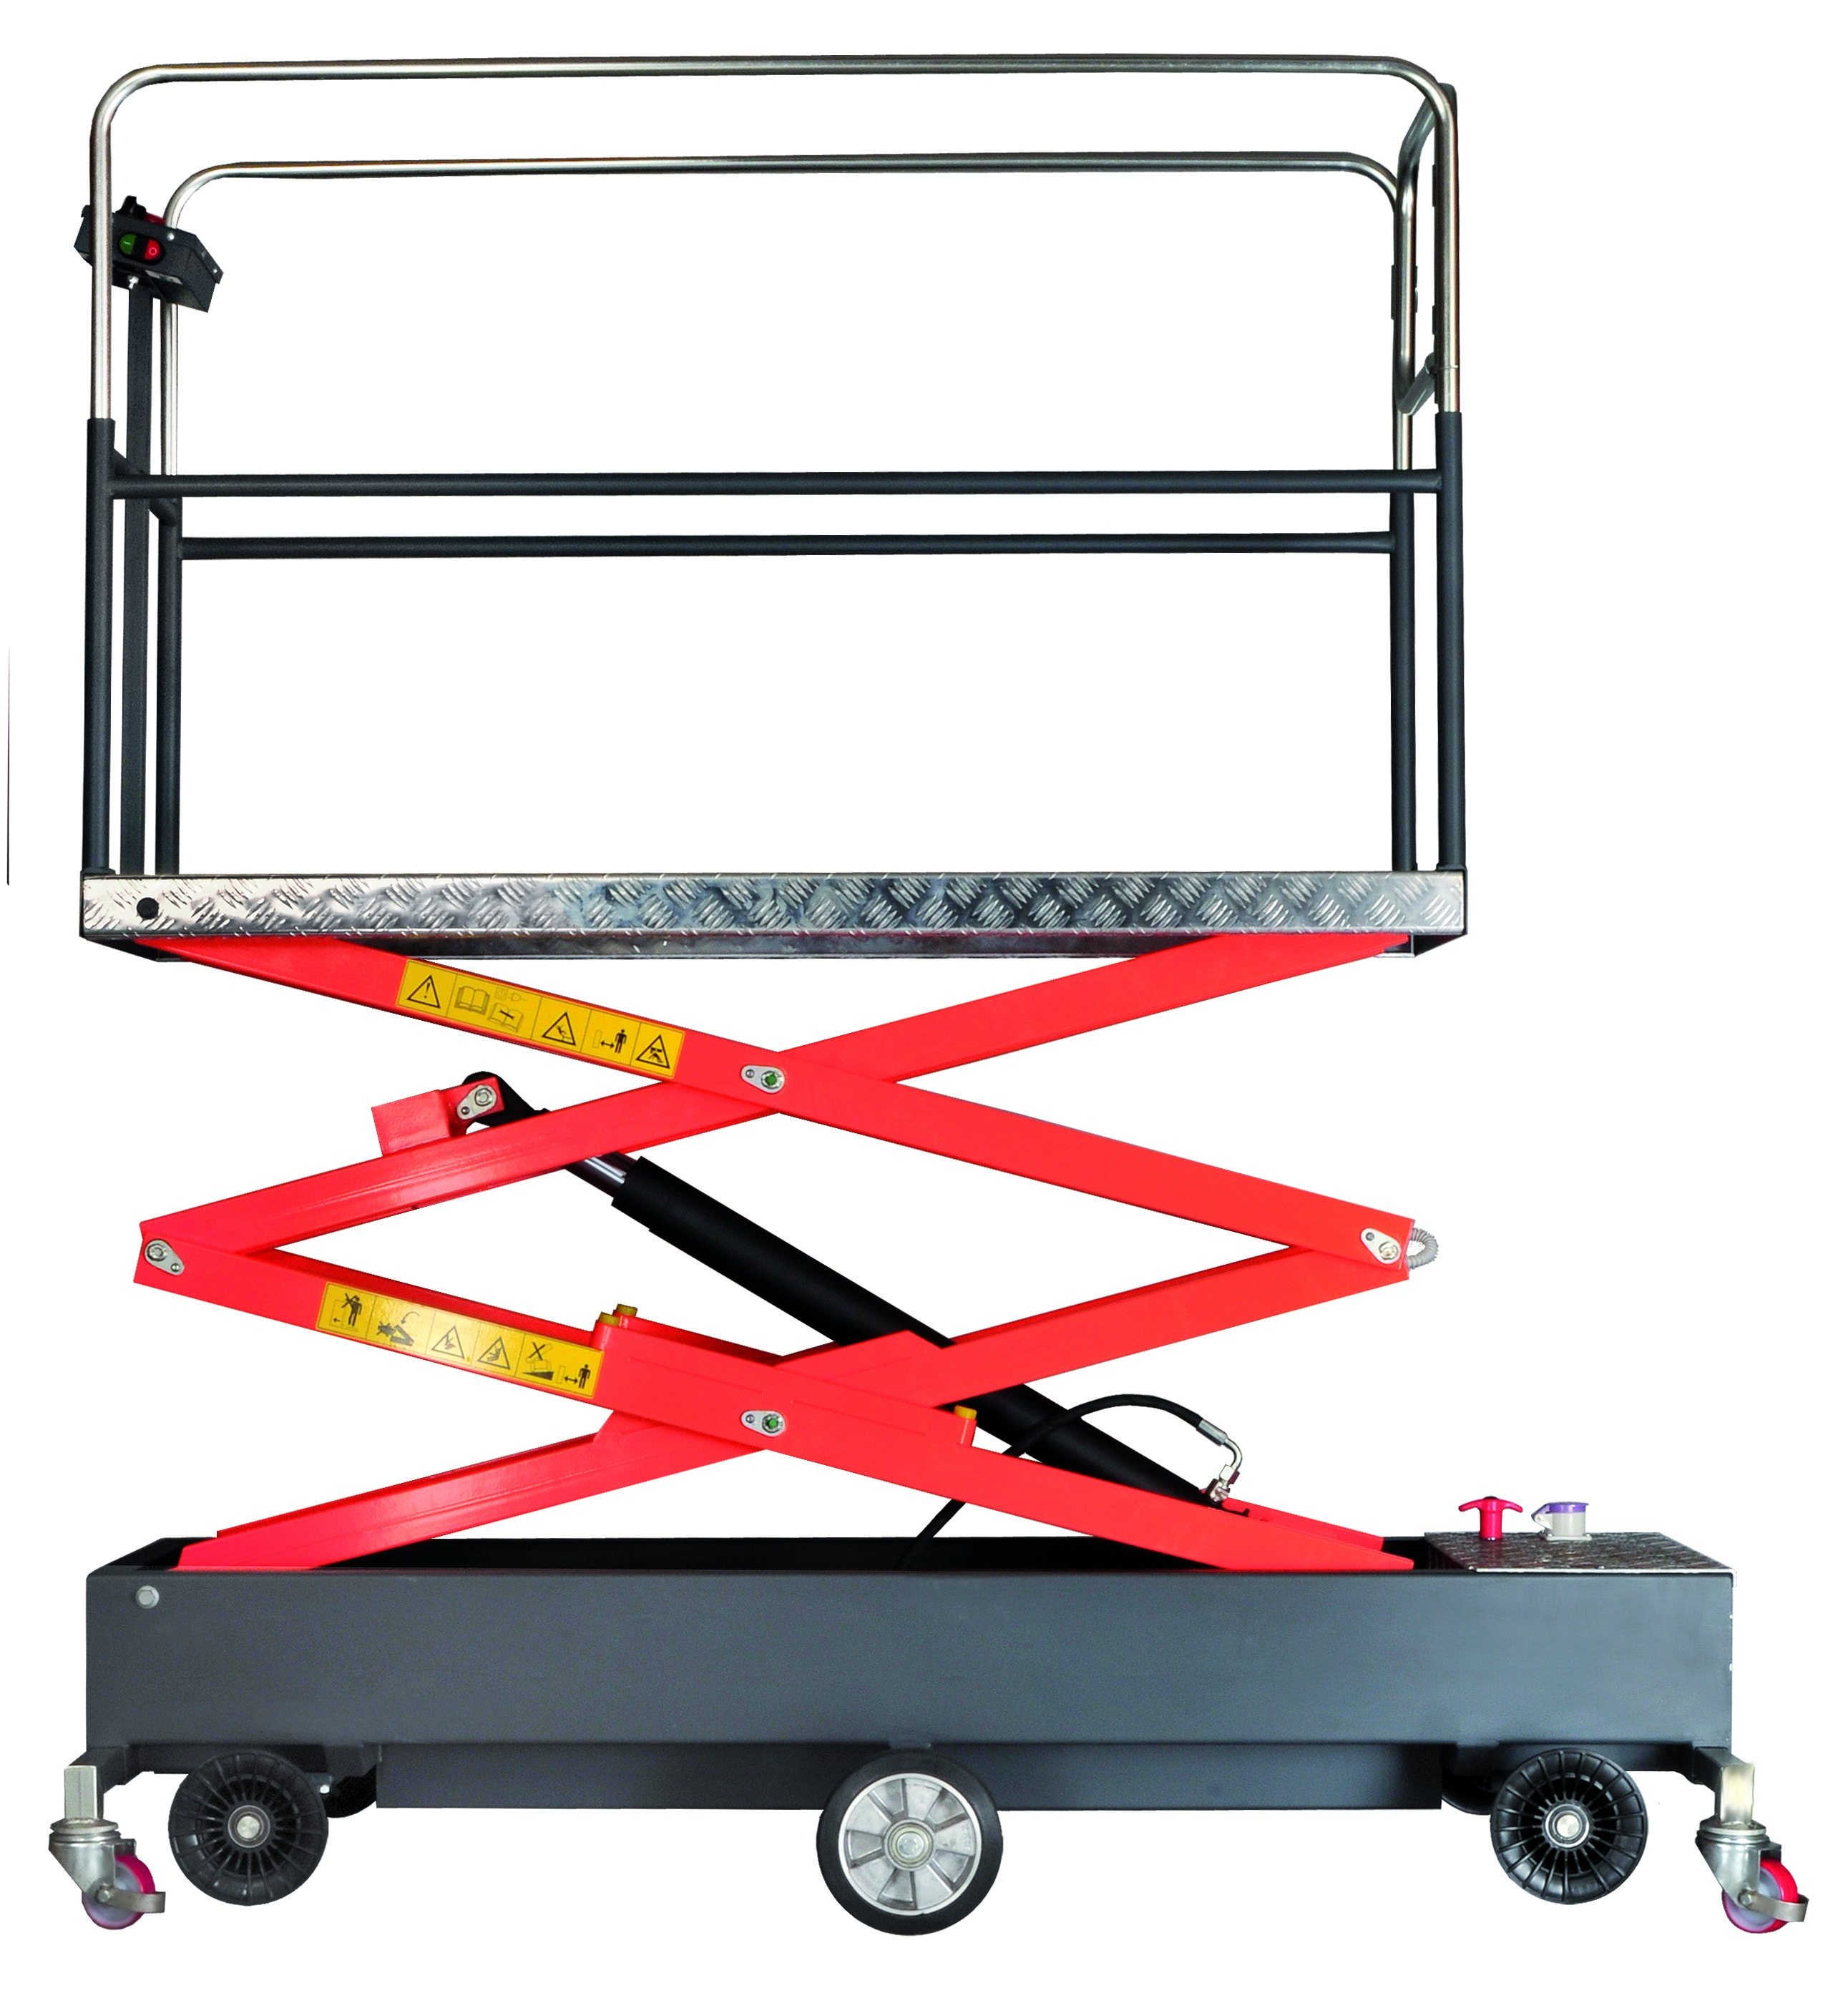 Greenhouse quad scissors trolley